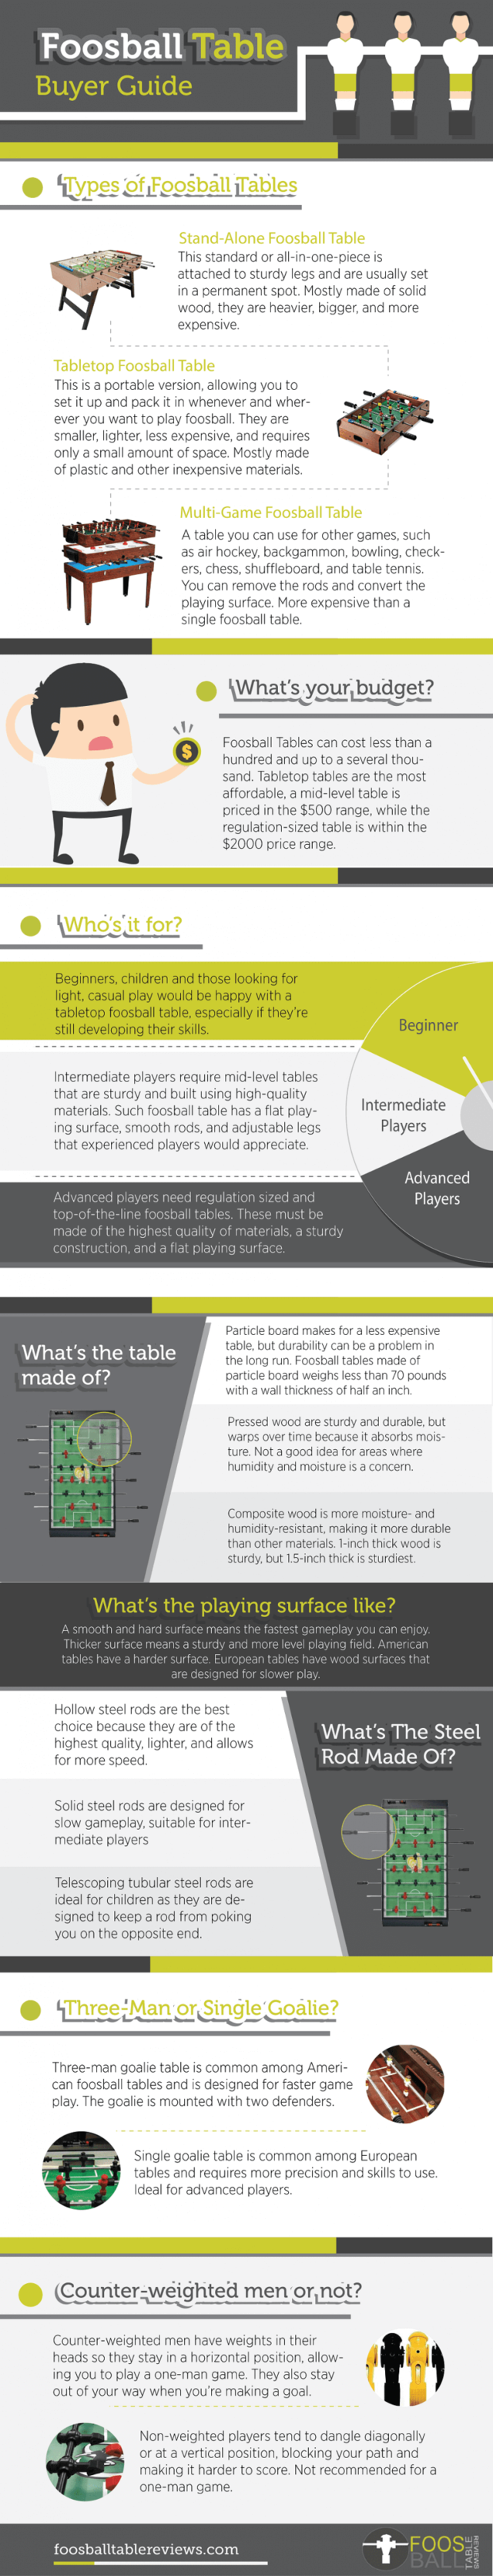 Foosball infographic